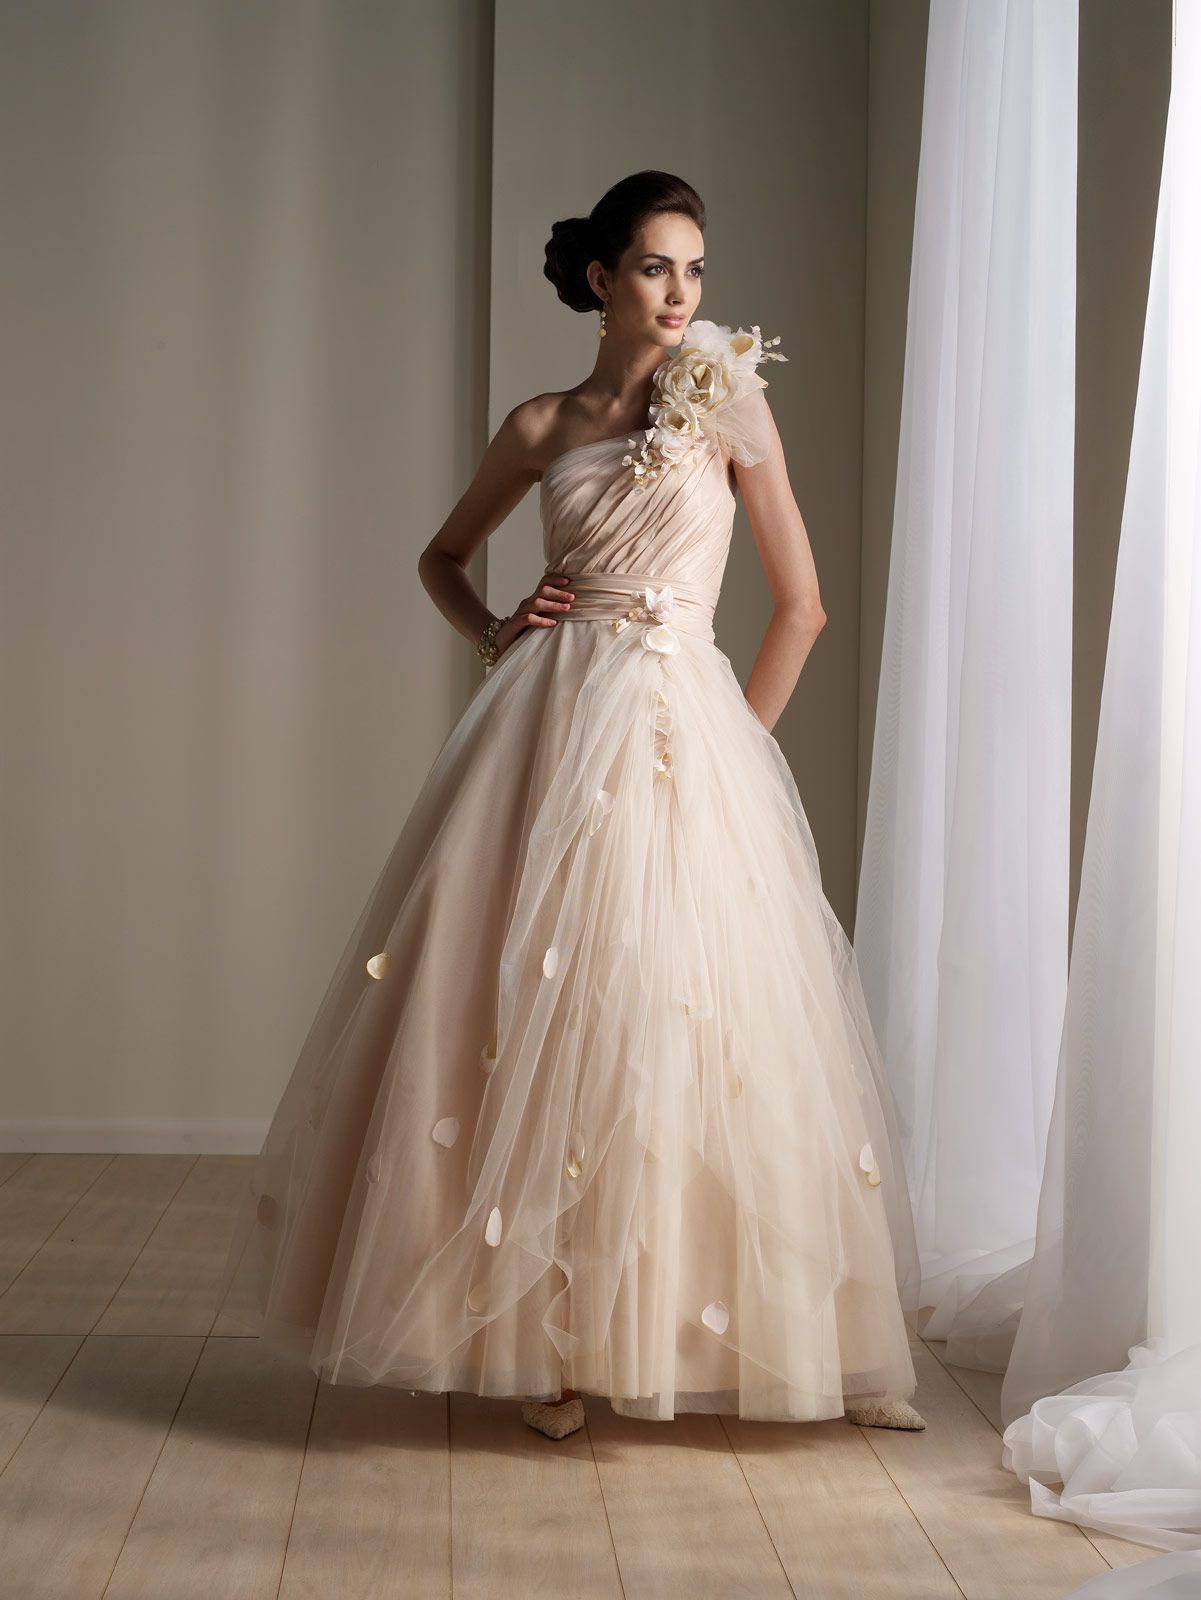 fantasy gowns gowns and informal wedding dresses